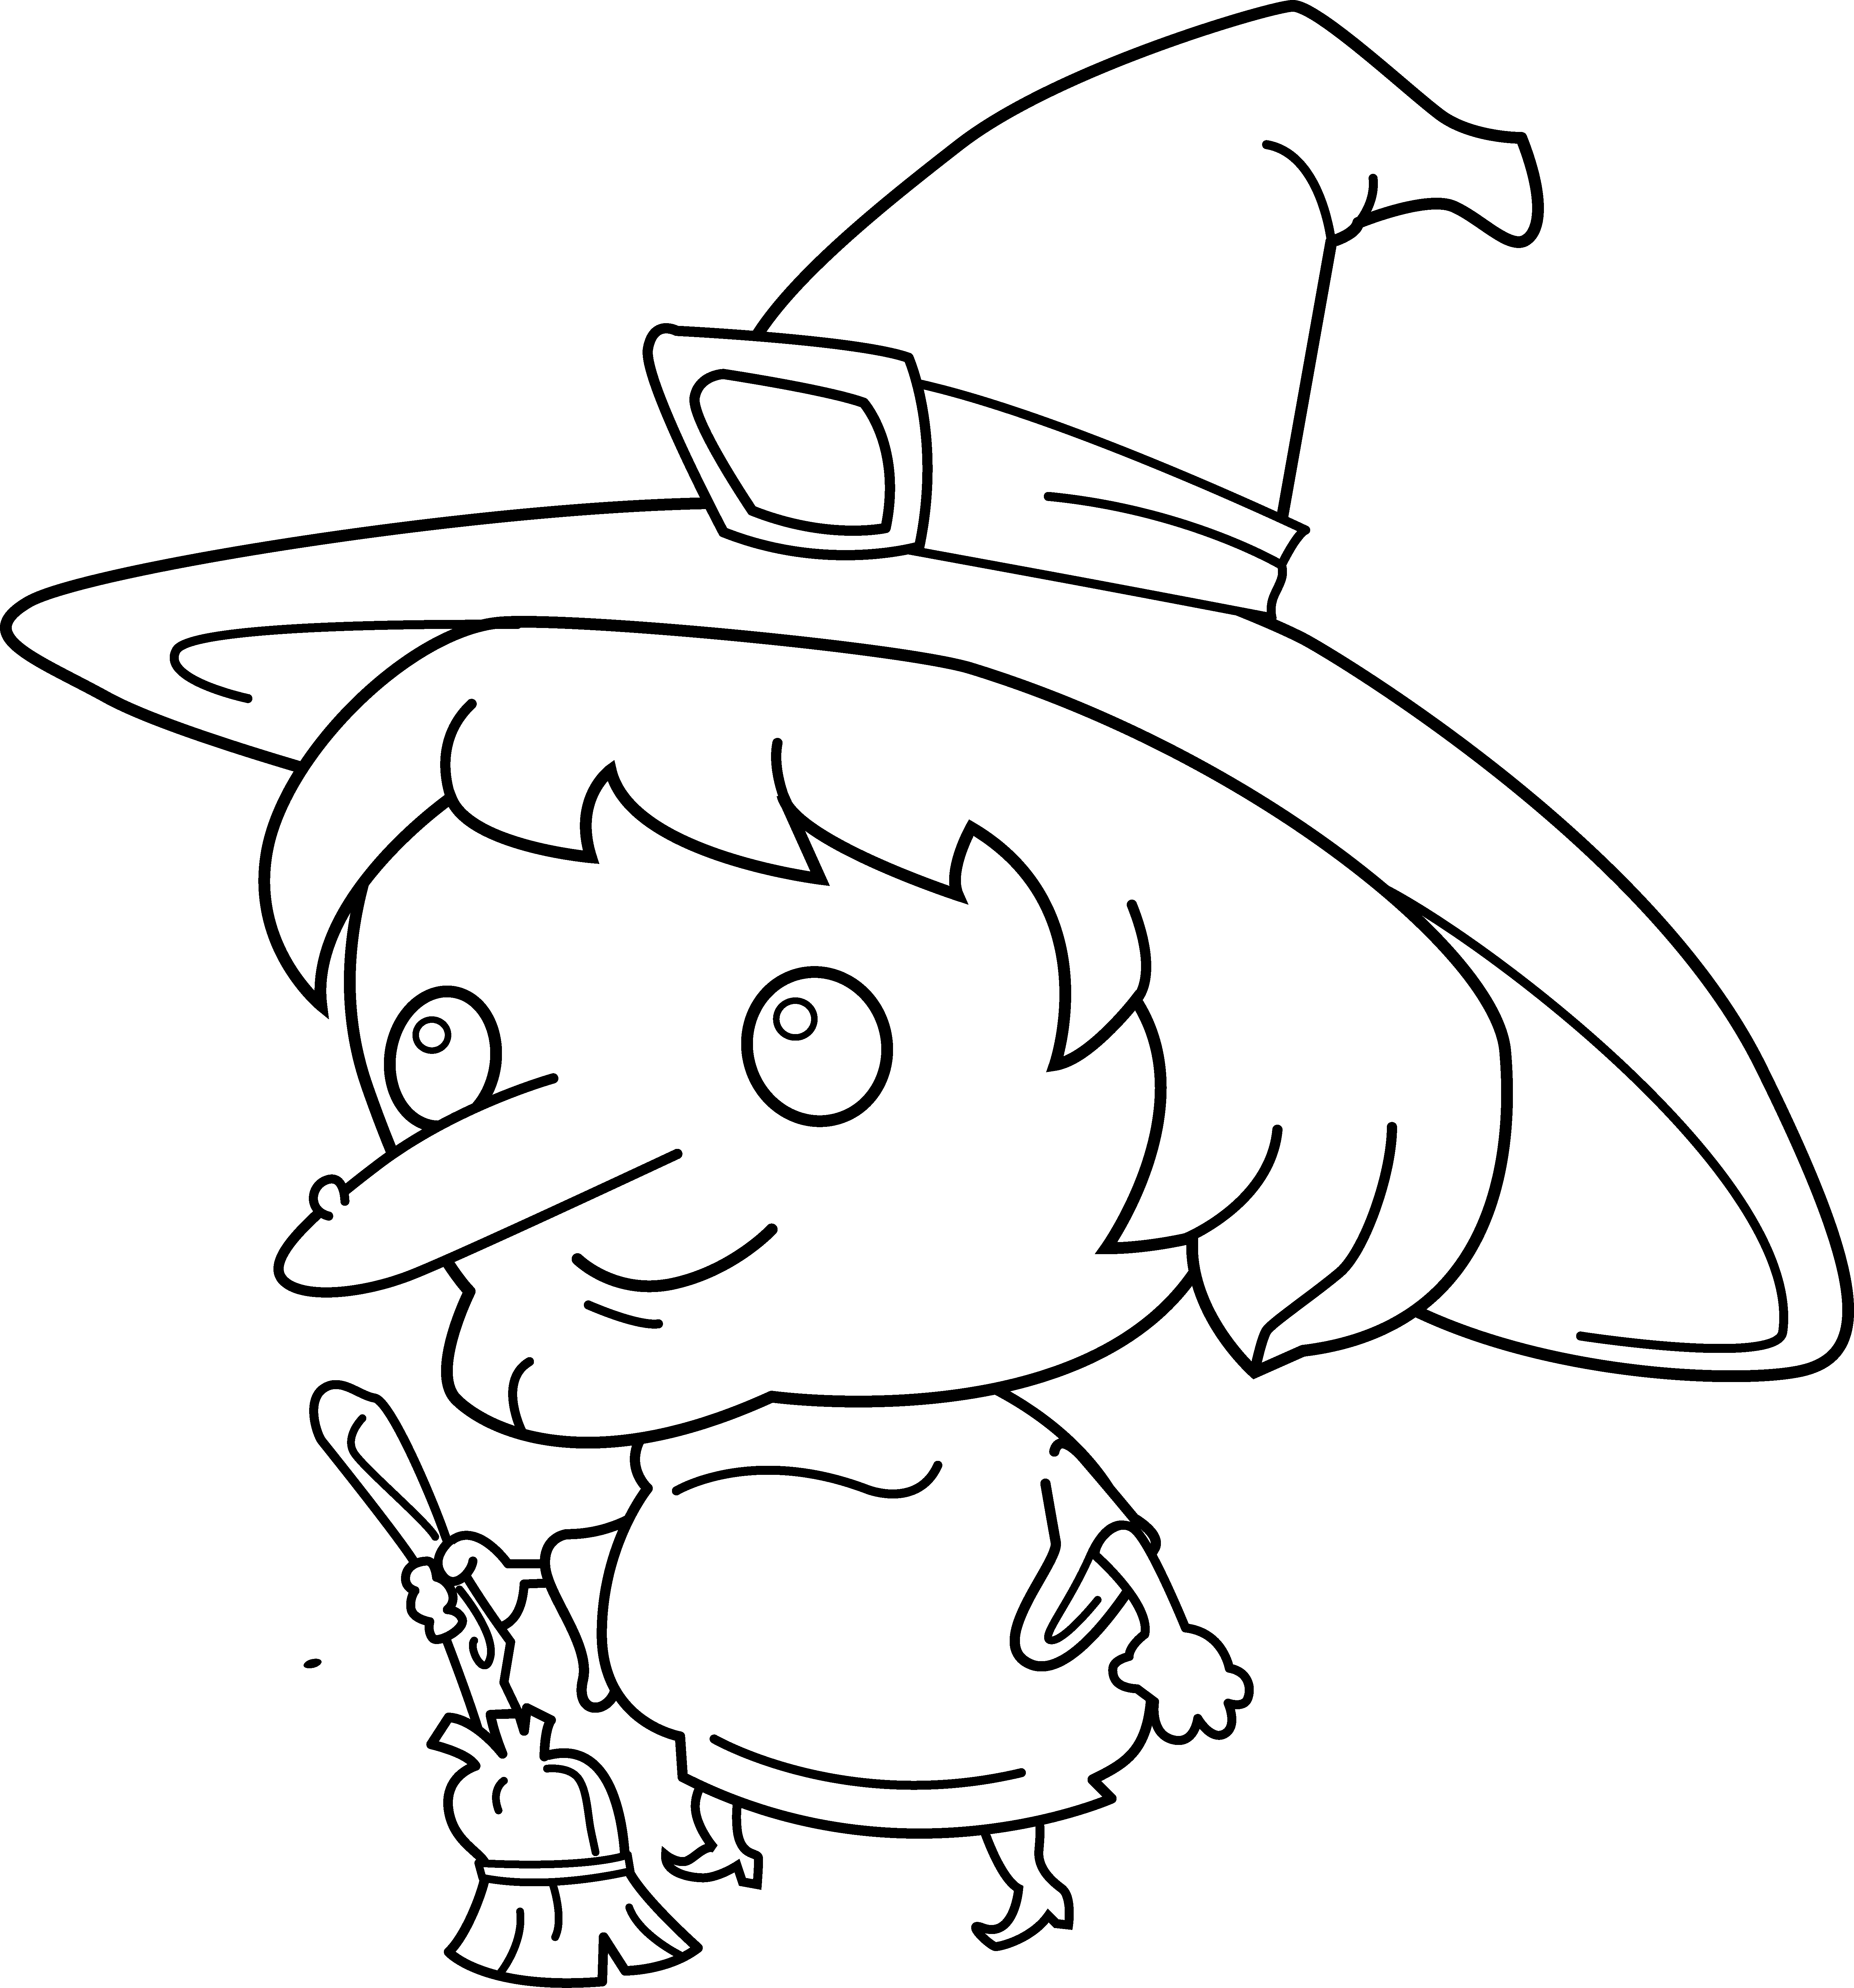 Witch Hat Clip Art Coloring Pages Cute Witch Coloring Page Free Clip Art Witch Coloring Pages Halloween Coloring Pages Fairy Coloring Pages